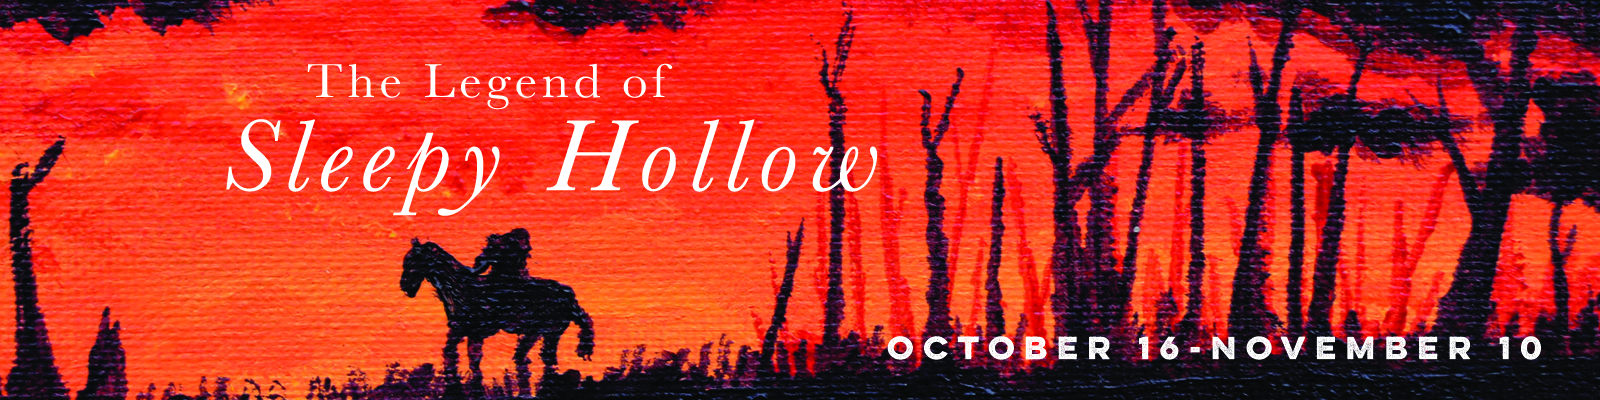 For thirteen select nights through November 10th, the Headless Horseman will star in a horrifically hilarious twist on a timeless classic.